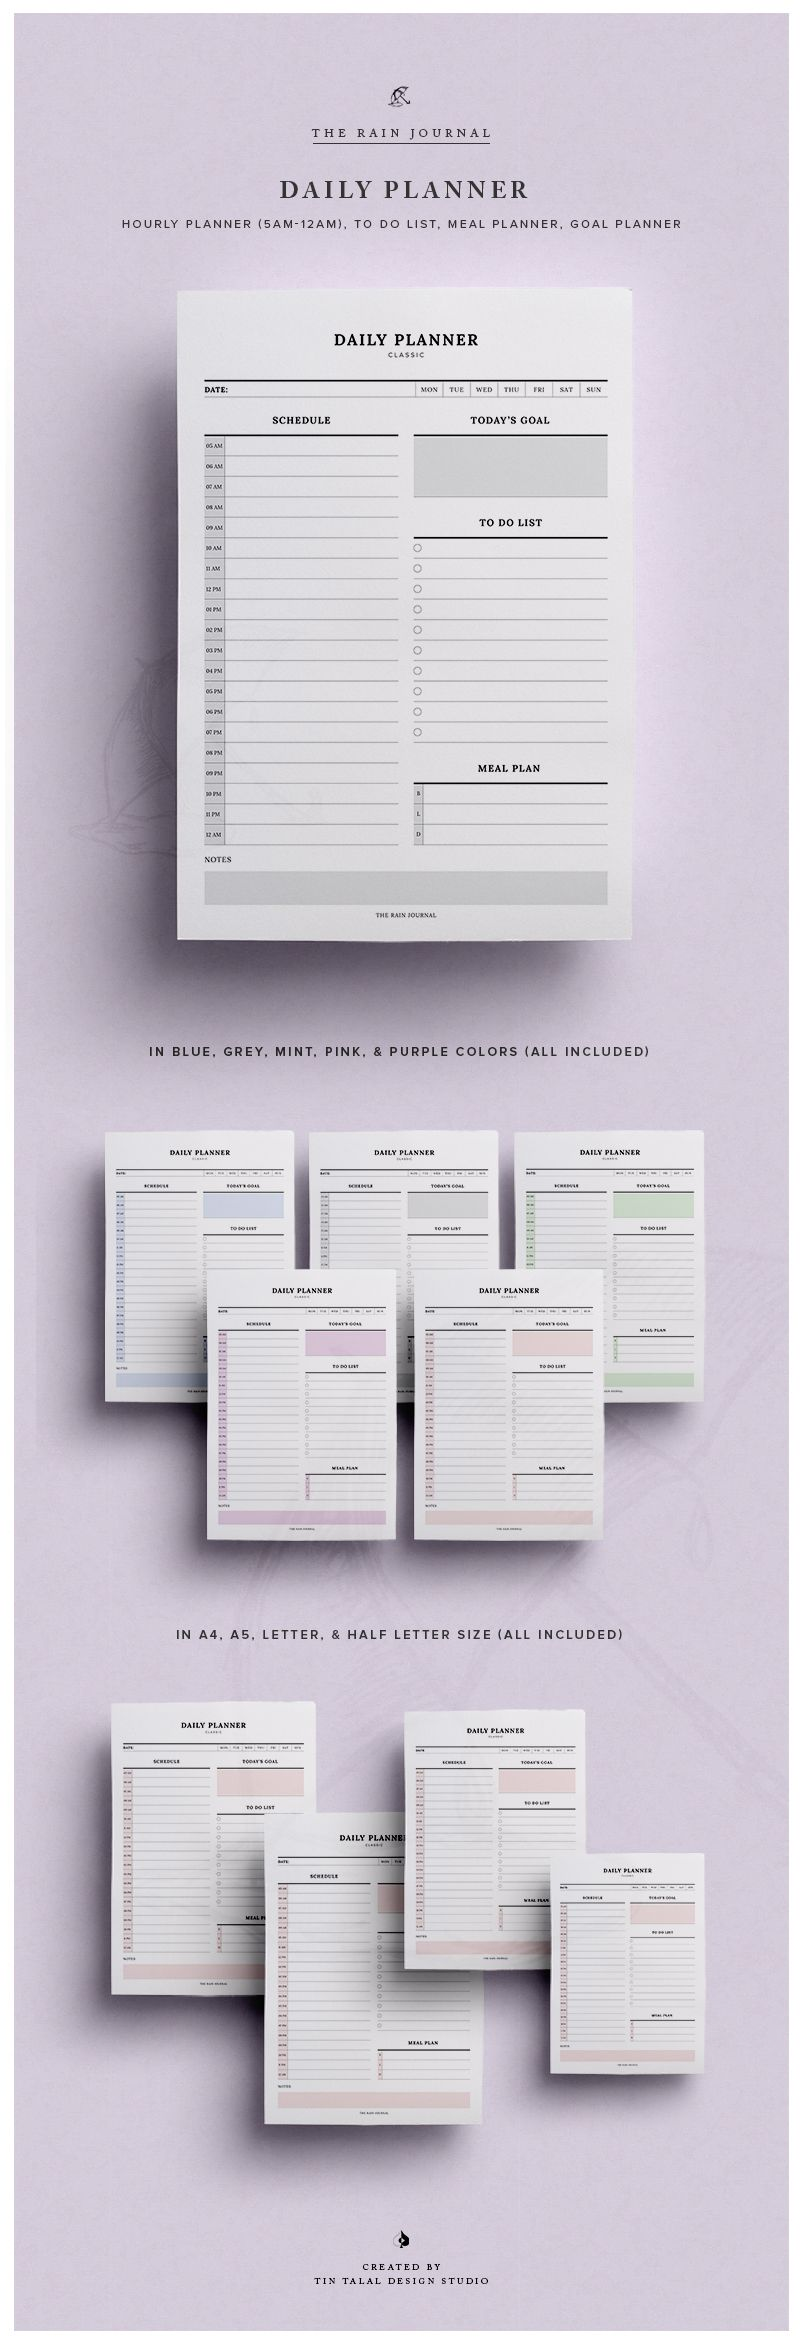 Daily Planner Printable w/ Hourly Planner, Meal Planner, & To Do ...